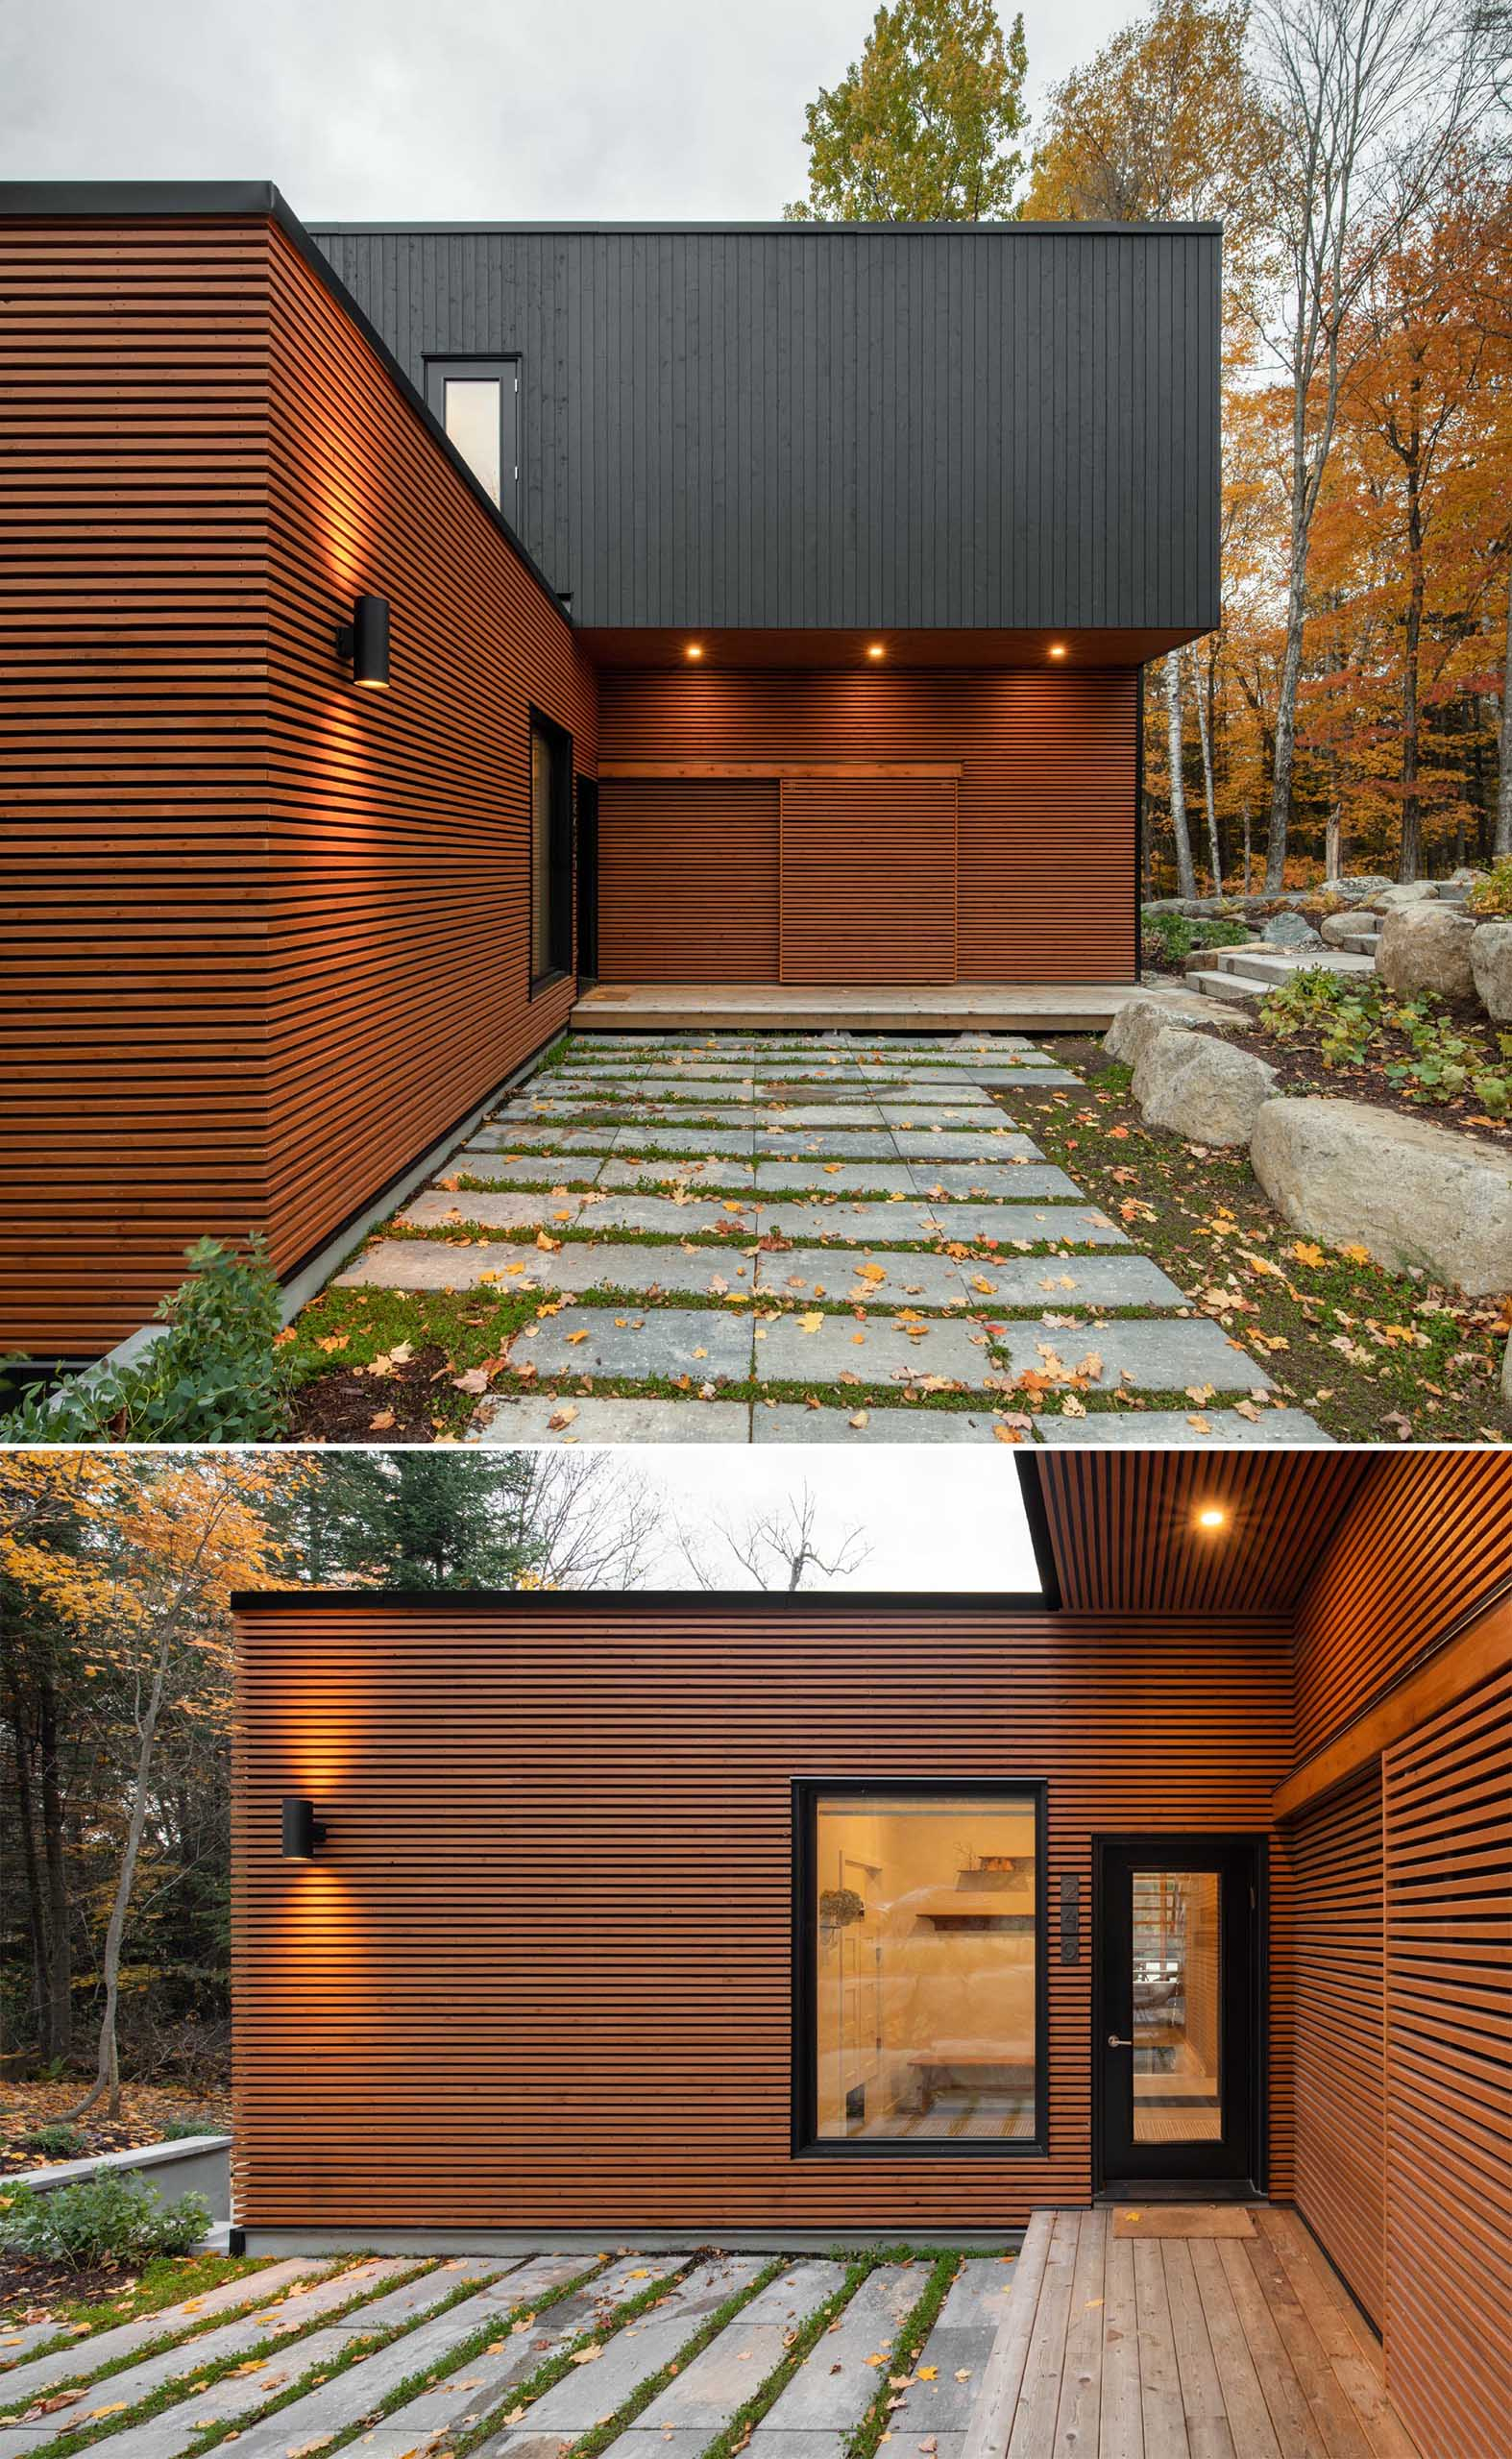 The natural colored exterior of this modern prefab home blends into the wooded area effortlessly, while the opaque black accents add interest.